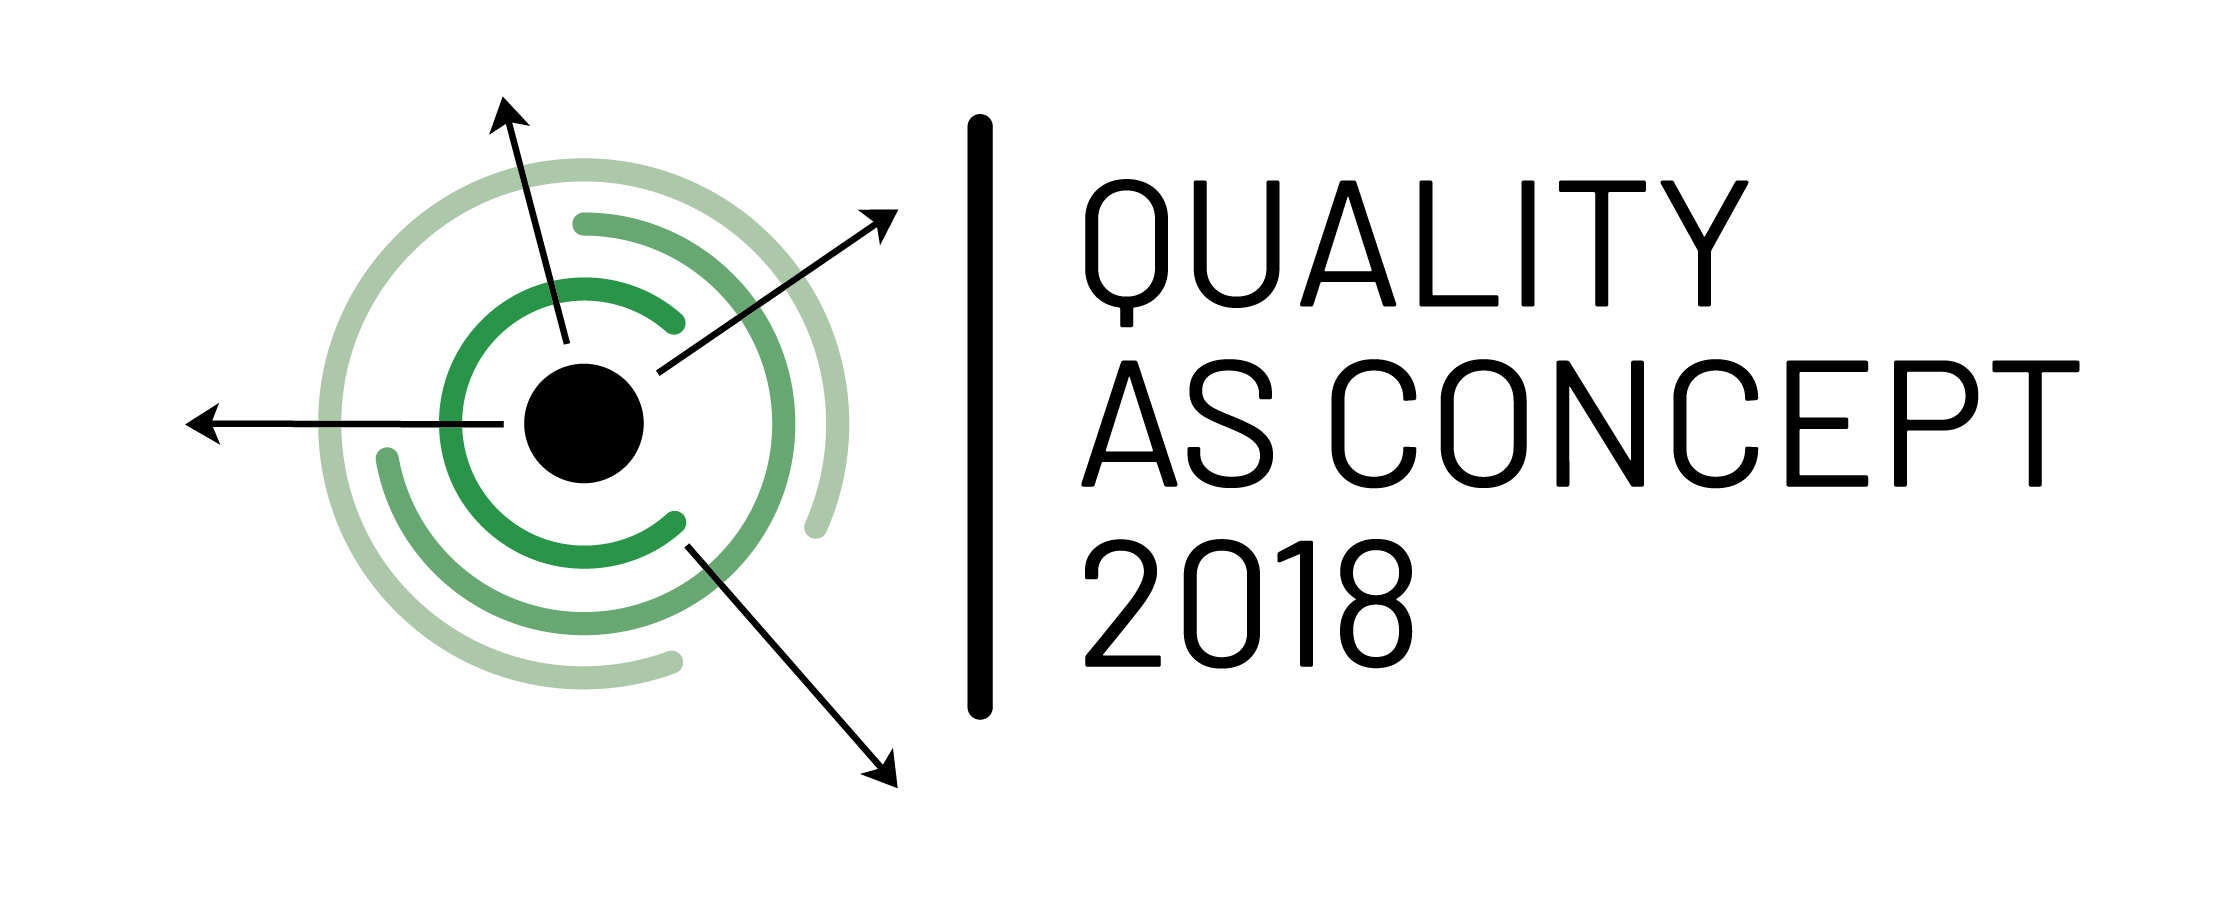 Quality as concept LOGO jpg